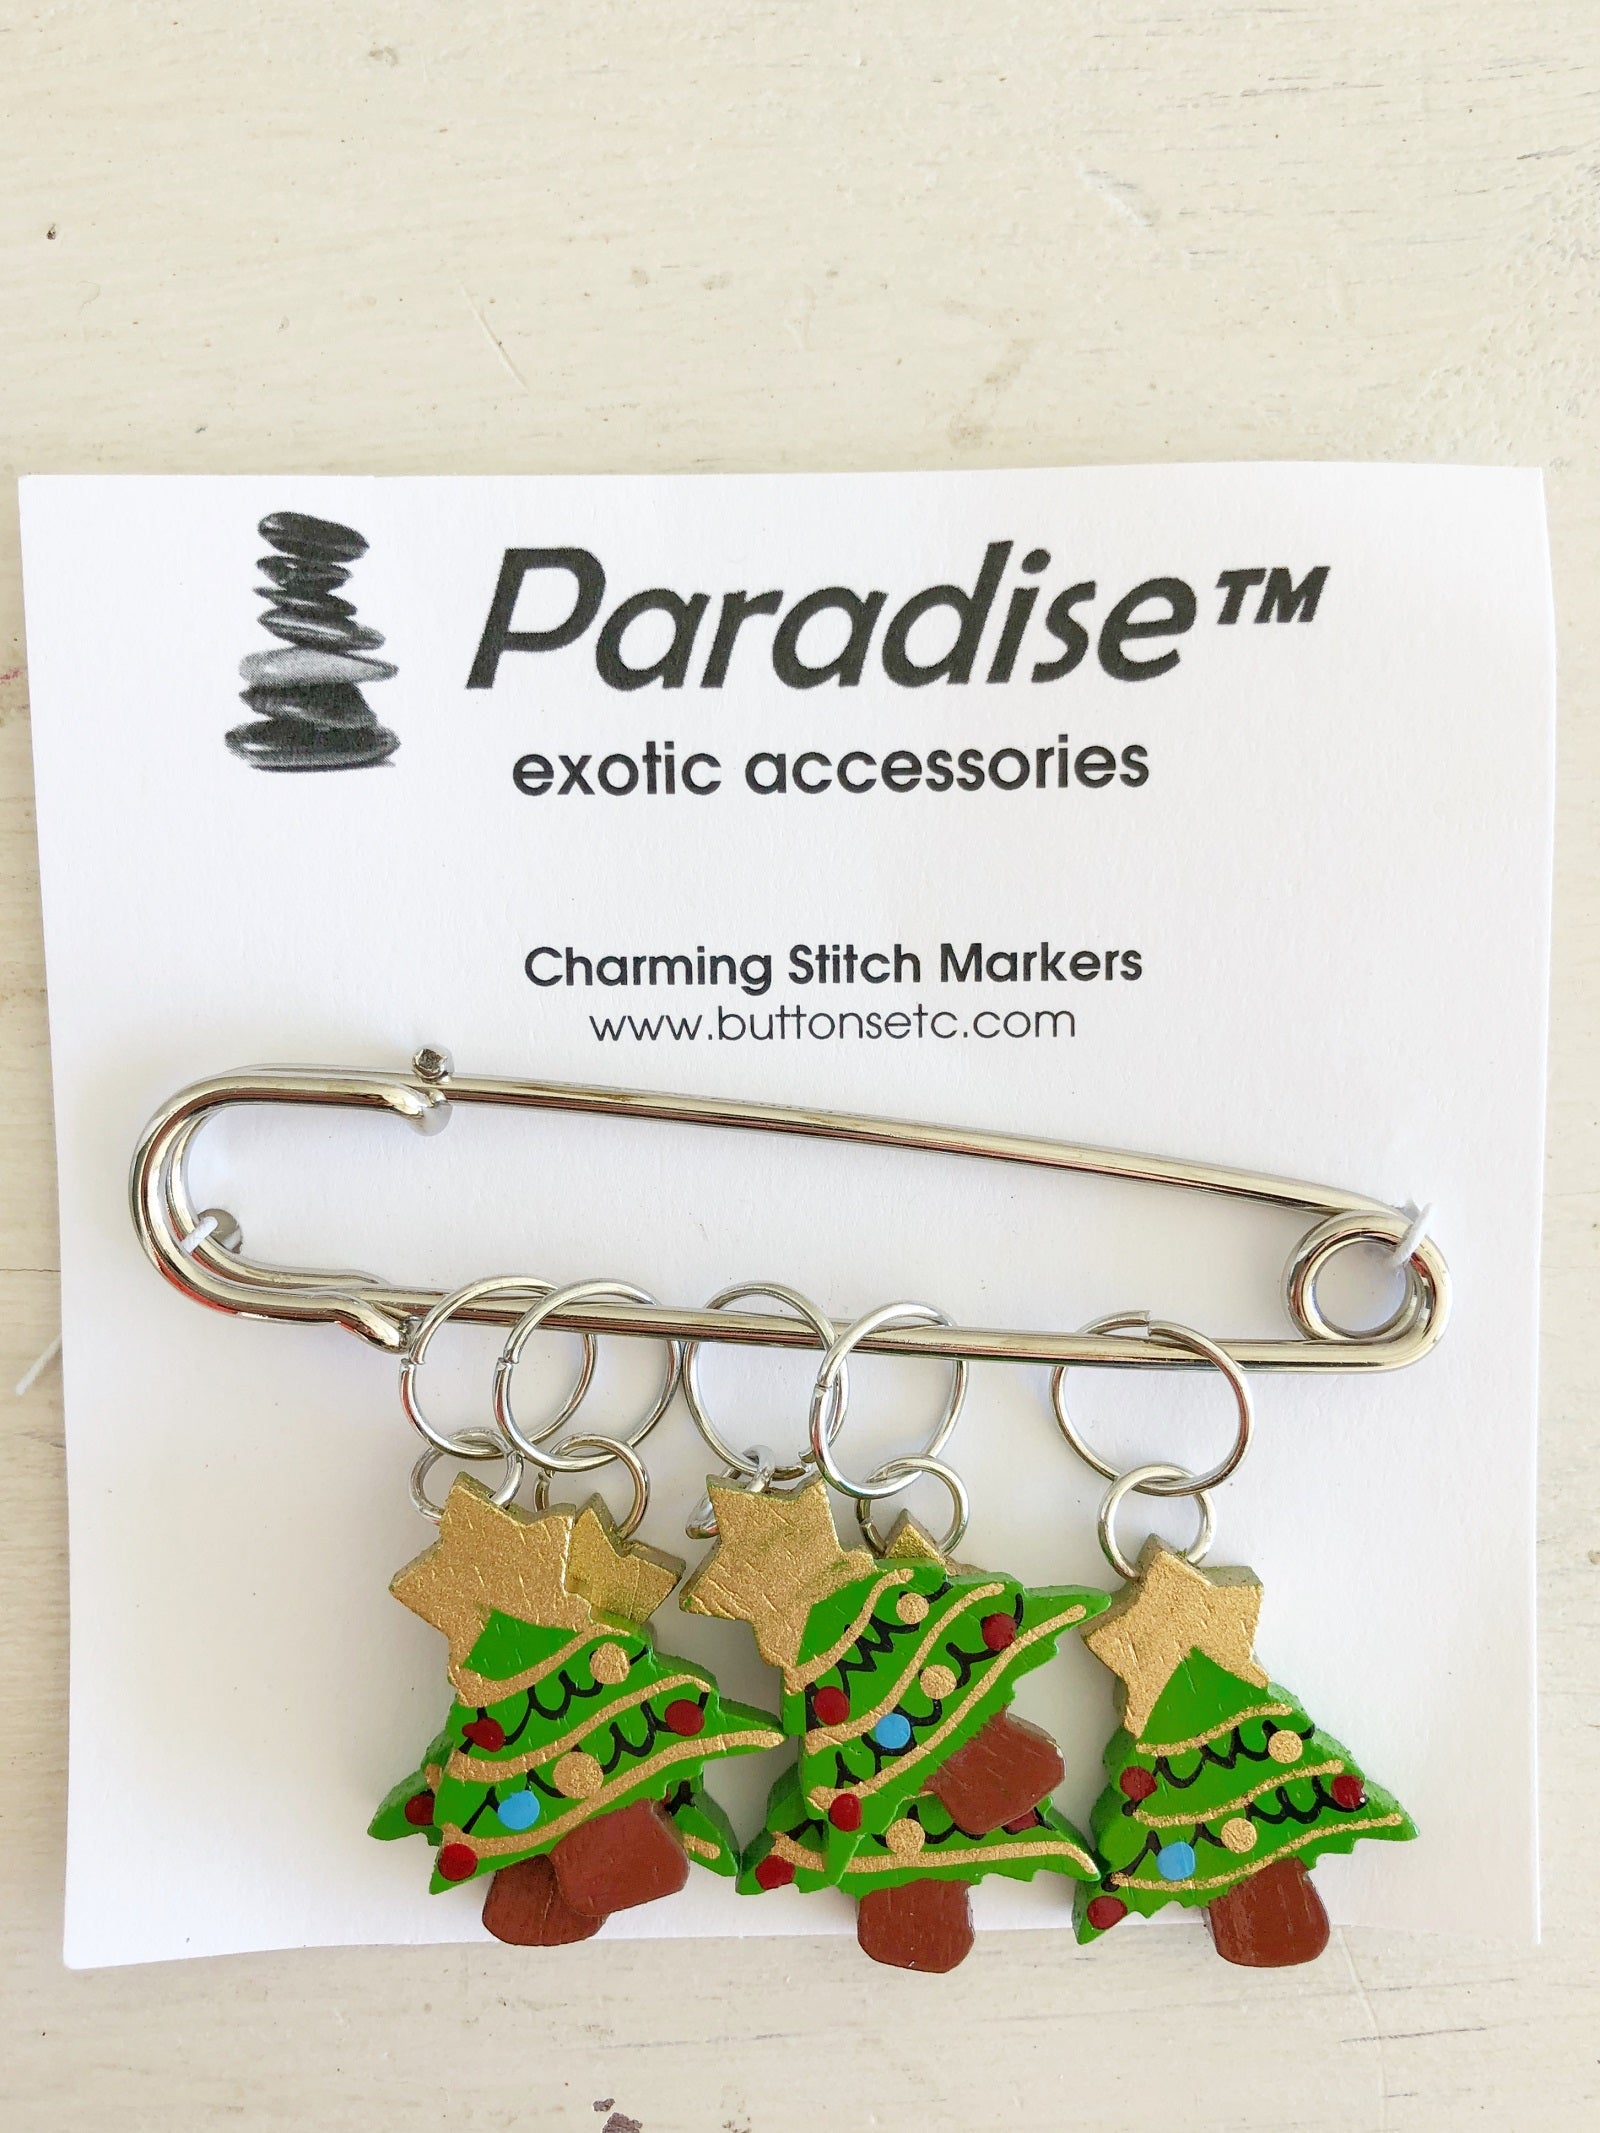 Paradise Charming Stitch Markers